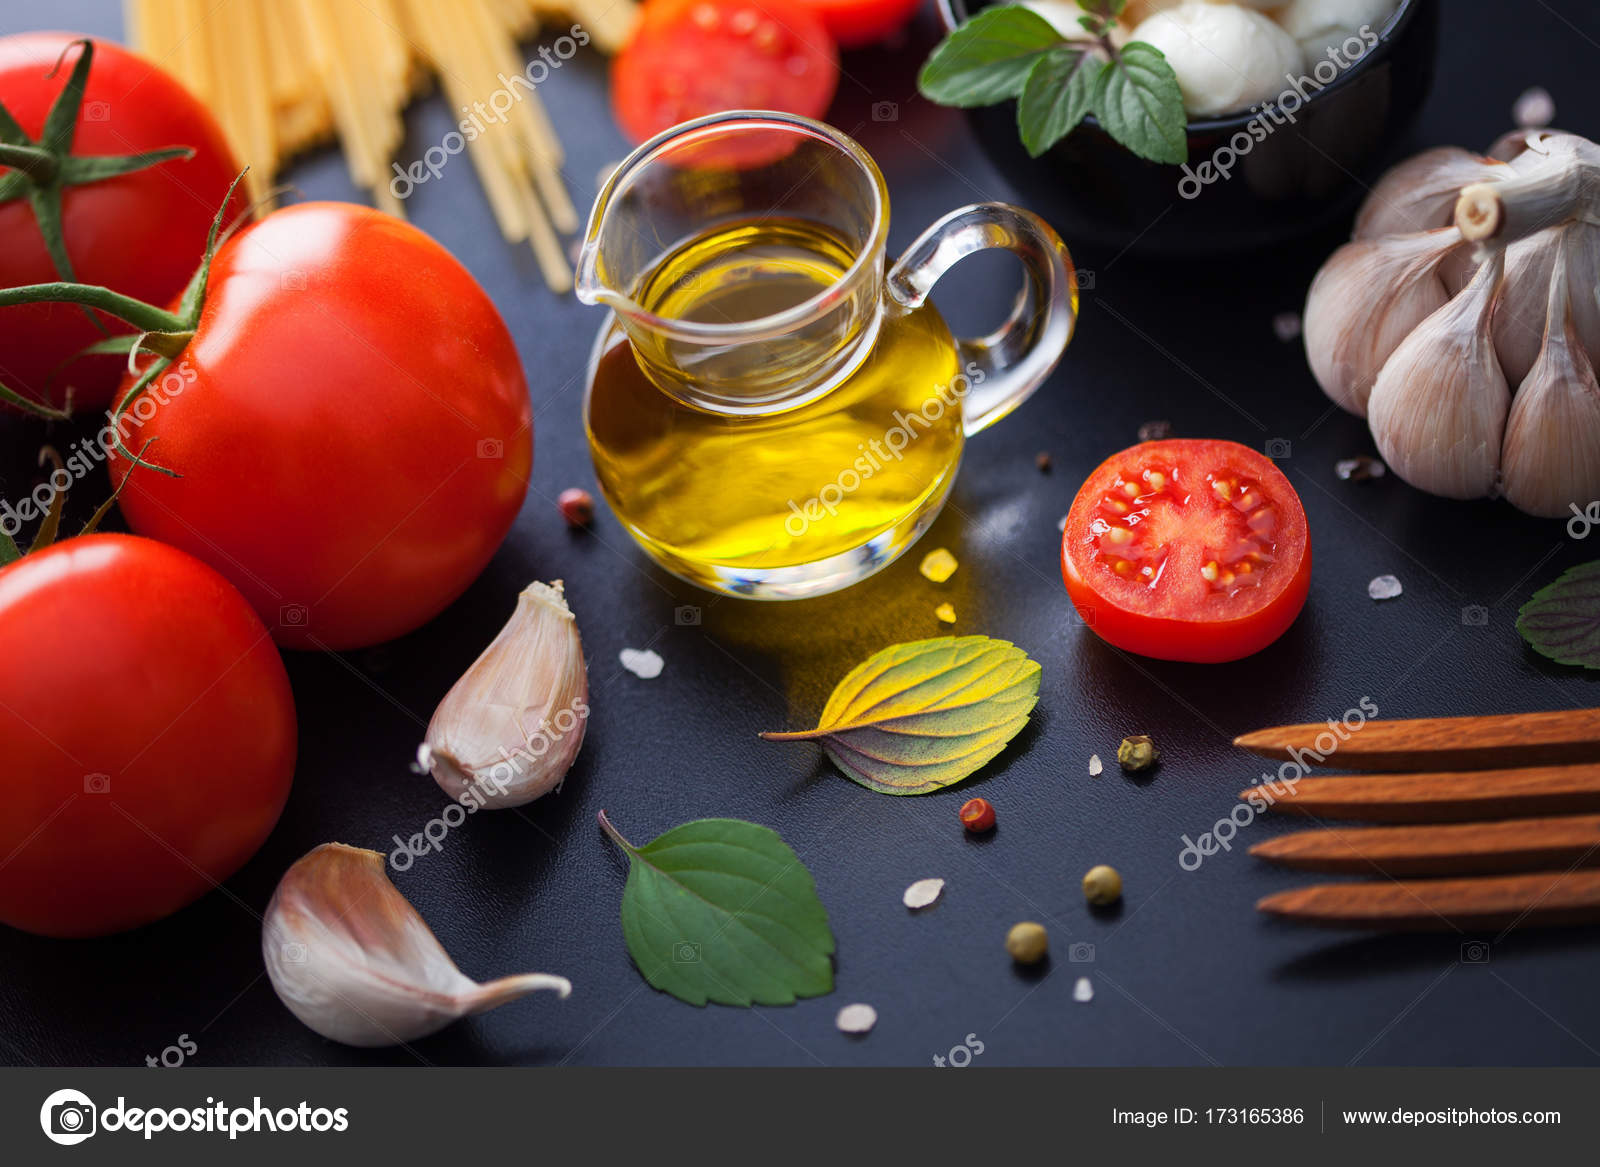 Cuisines Vial Vial With Olive Oil Stock Photo Matka Wariatka 173165386